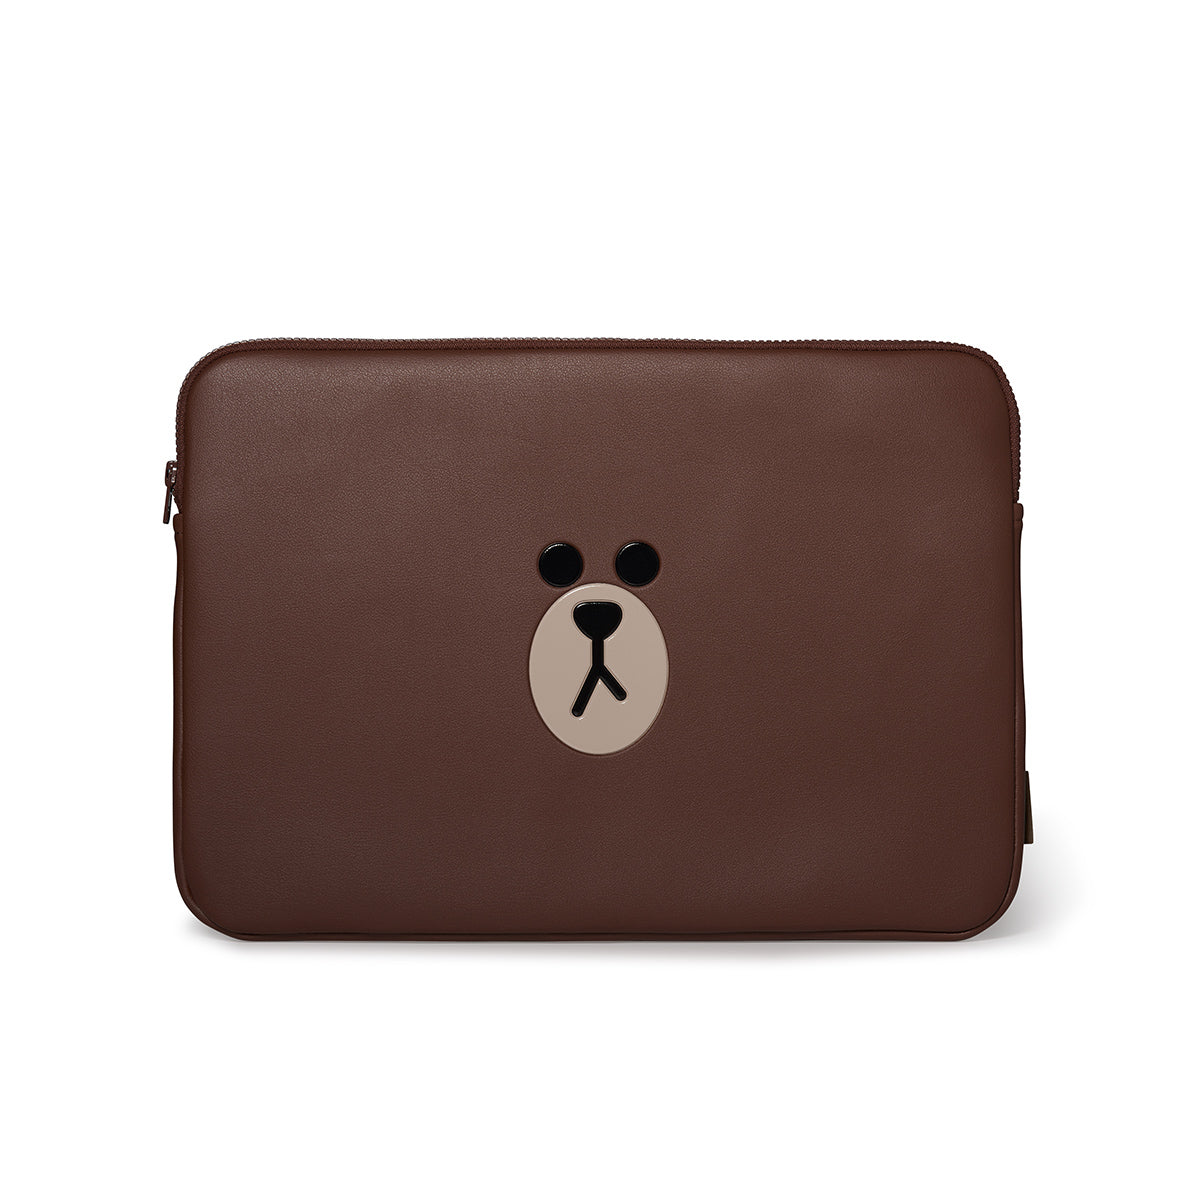 LINE FRIENDS BROWN Faux Leather 15 Inch Laptop Cover